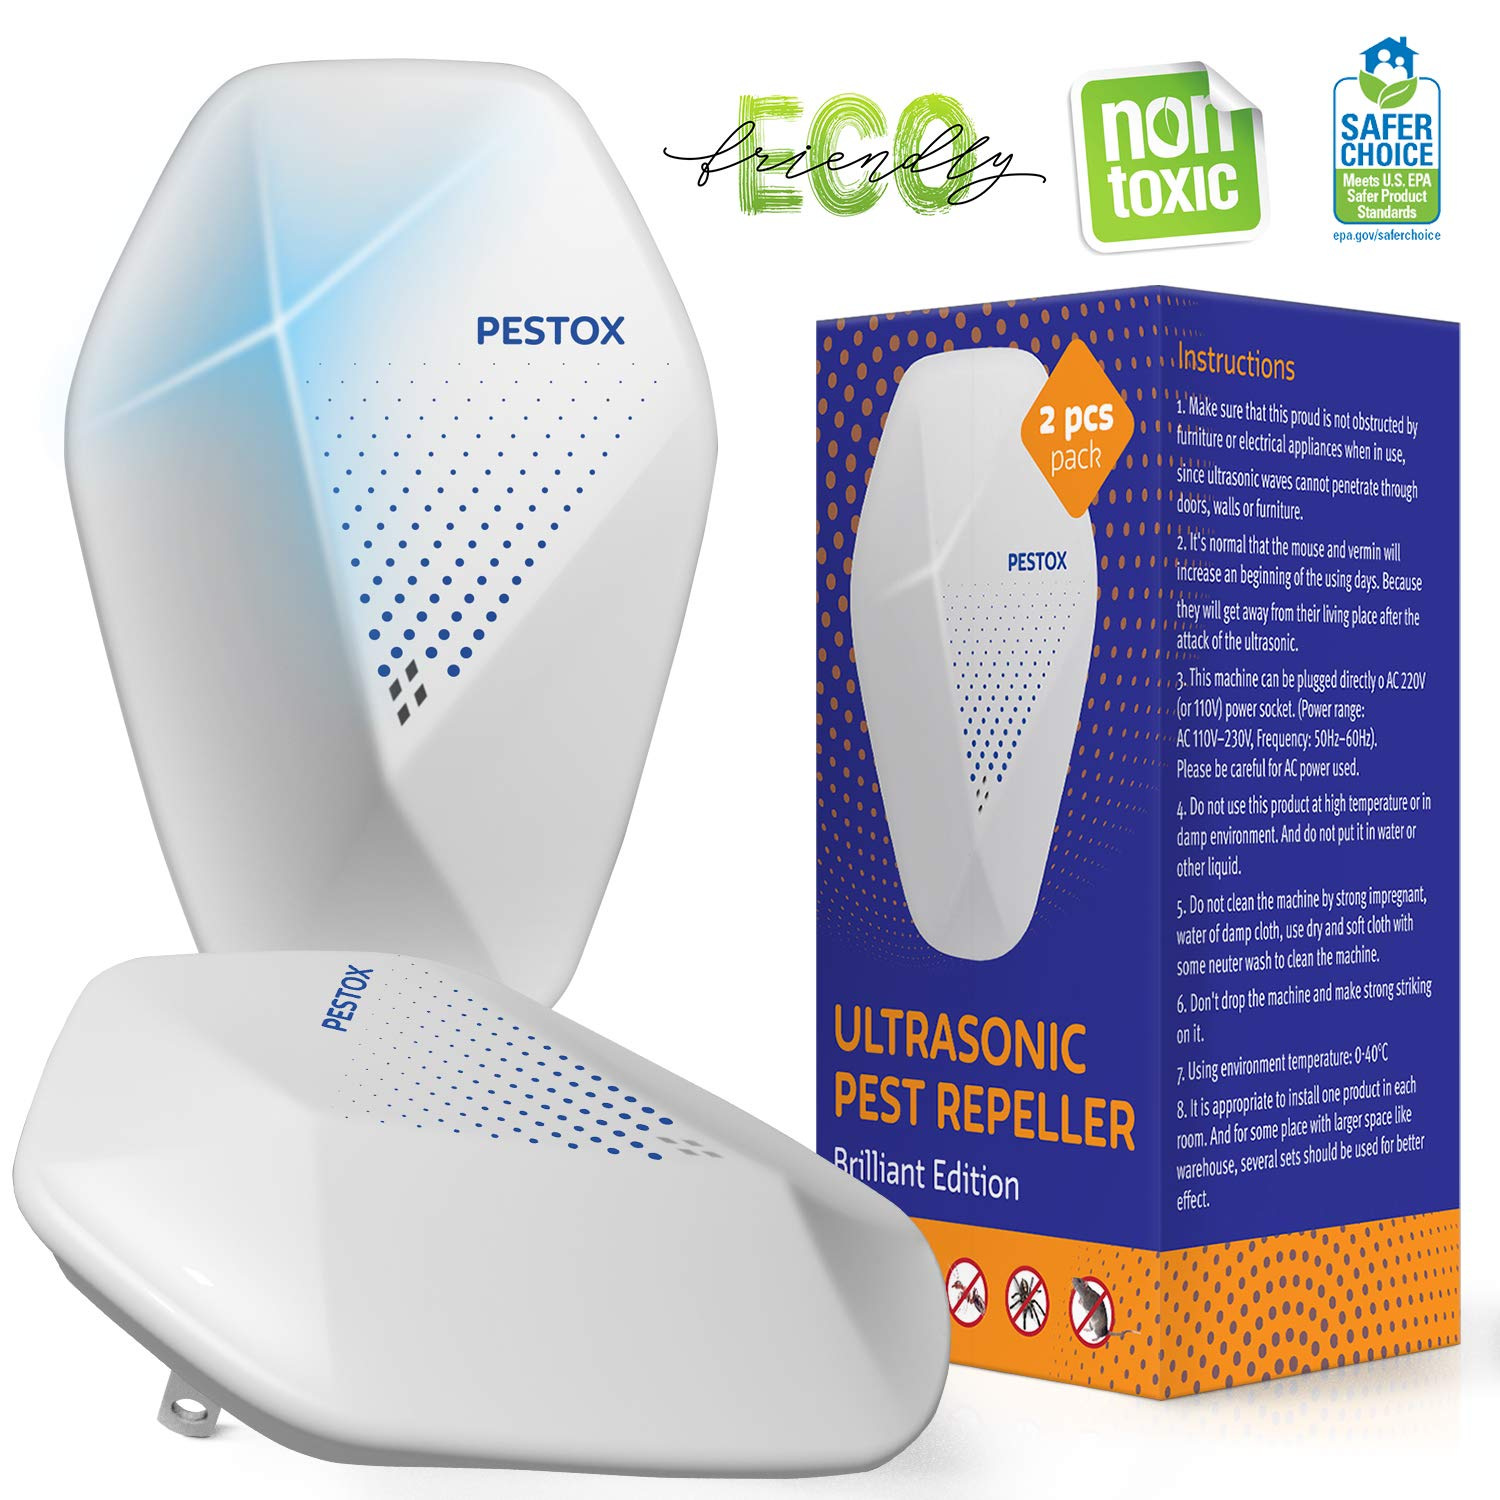 Ultrasonic Pest Repeller - 2019 New - Outdoor/Indoor Plug in Electronic Pest Repellent - 2 Pack - Get Rid of Rat Mouse Squirrel Bug Bee Cockroach Fly Spider Mosquito - Safe for Pet (2) by Pestox